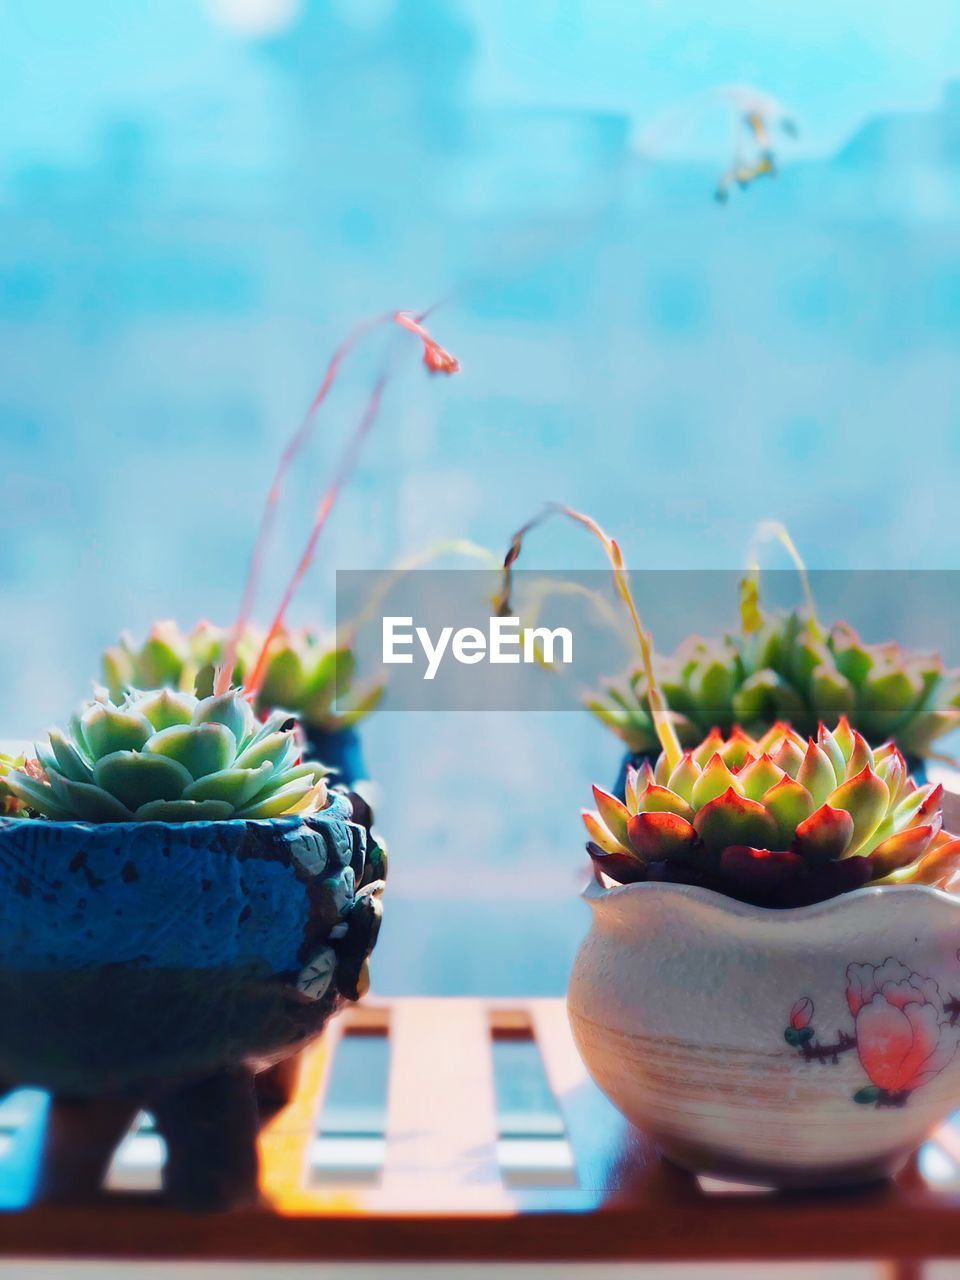 potted plant, succulent plant, no people, close-up, freshness, cactus, table, plant, food and drink, growth, nature, focus on foreground, day, food, green color, still life, fruit, outdoors, healthy eating, pot, flower pot, houseplant